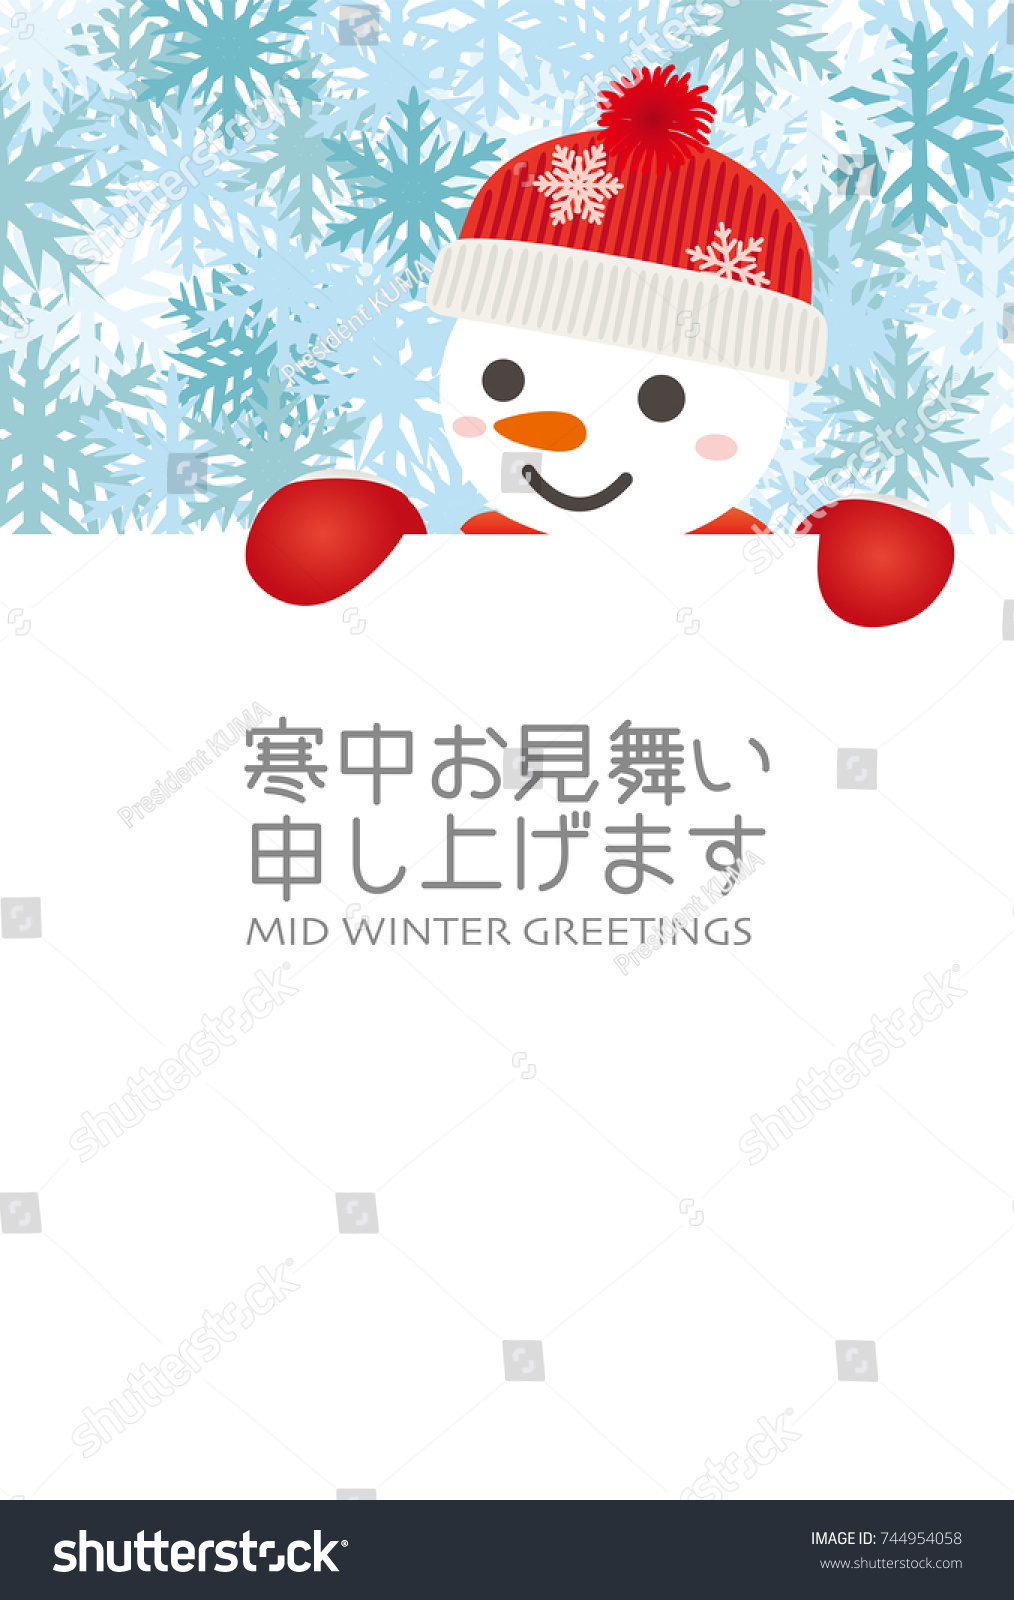 Japanese Midwinter Greeting Card Translation Midwinter Stock Vector